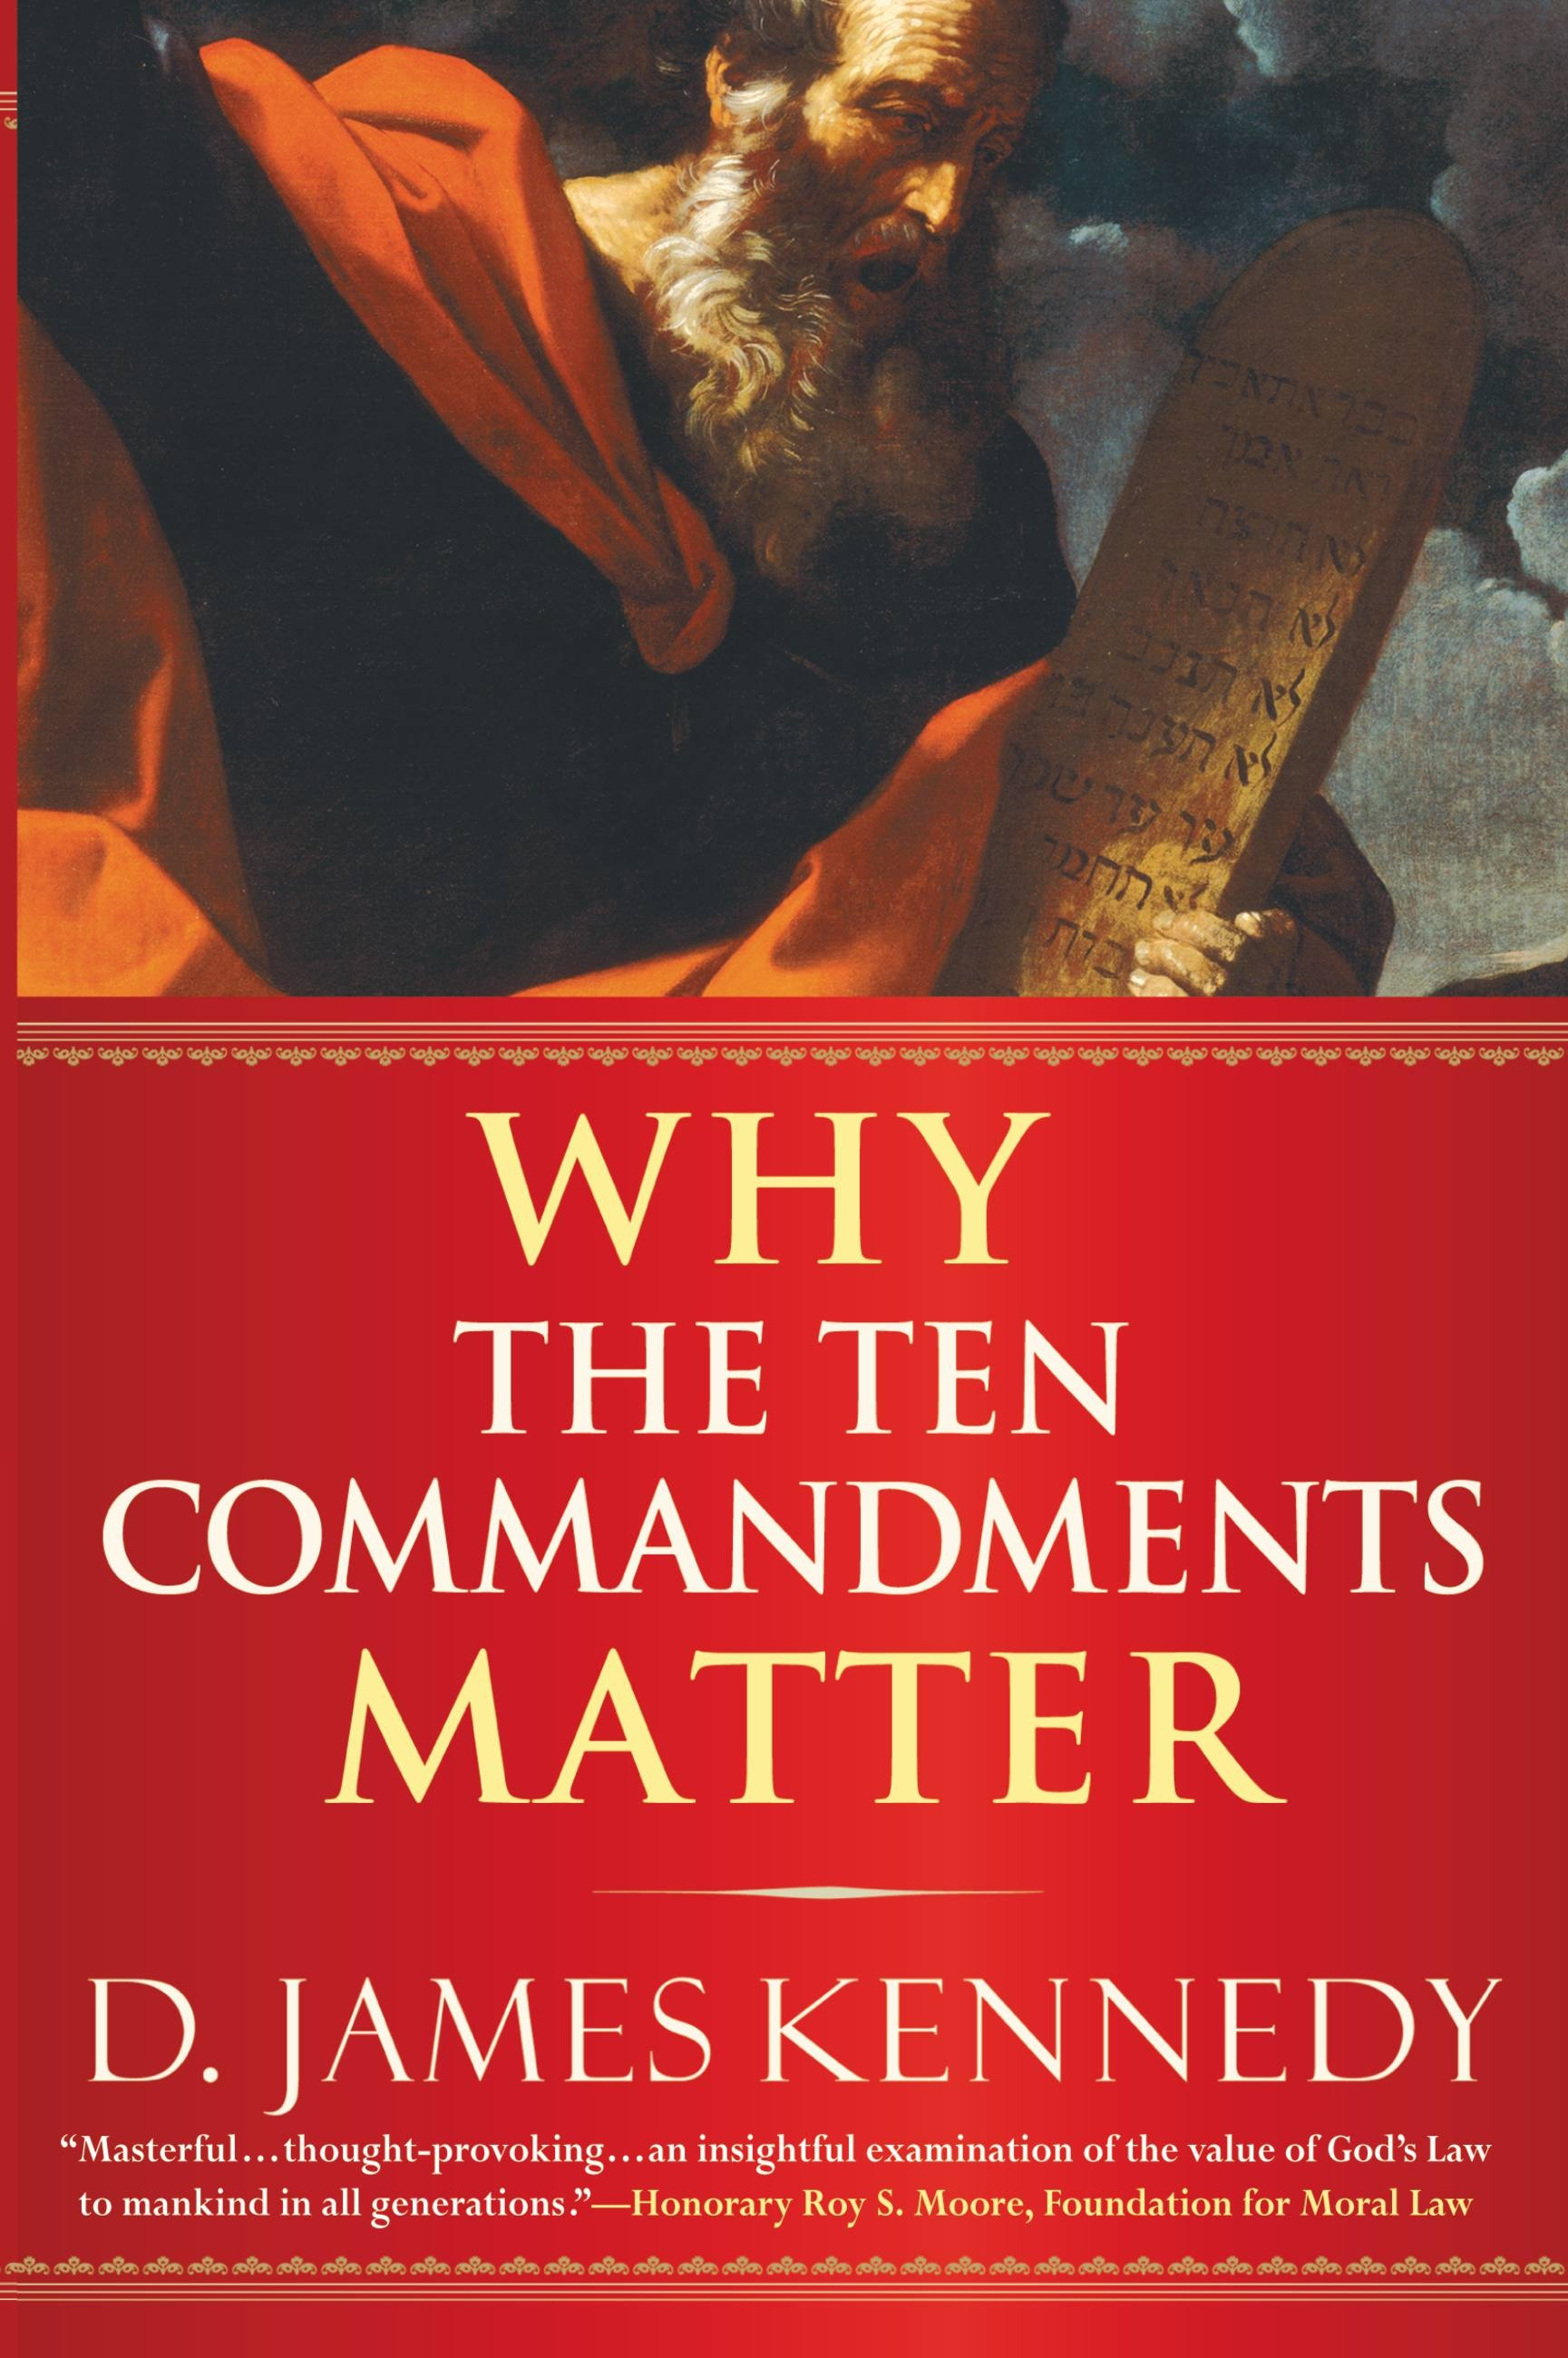 Why the Ten Commandments Matter